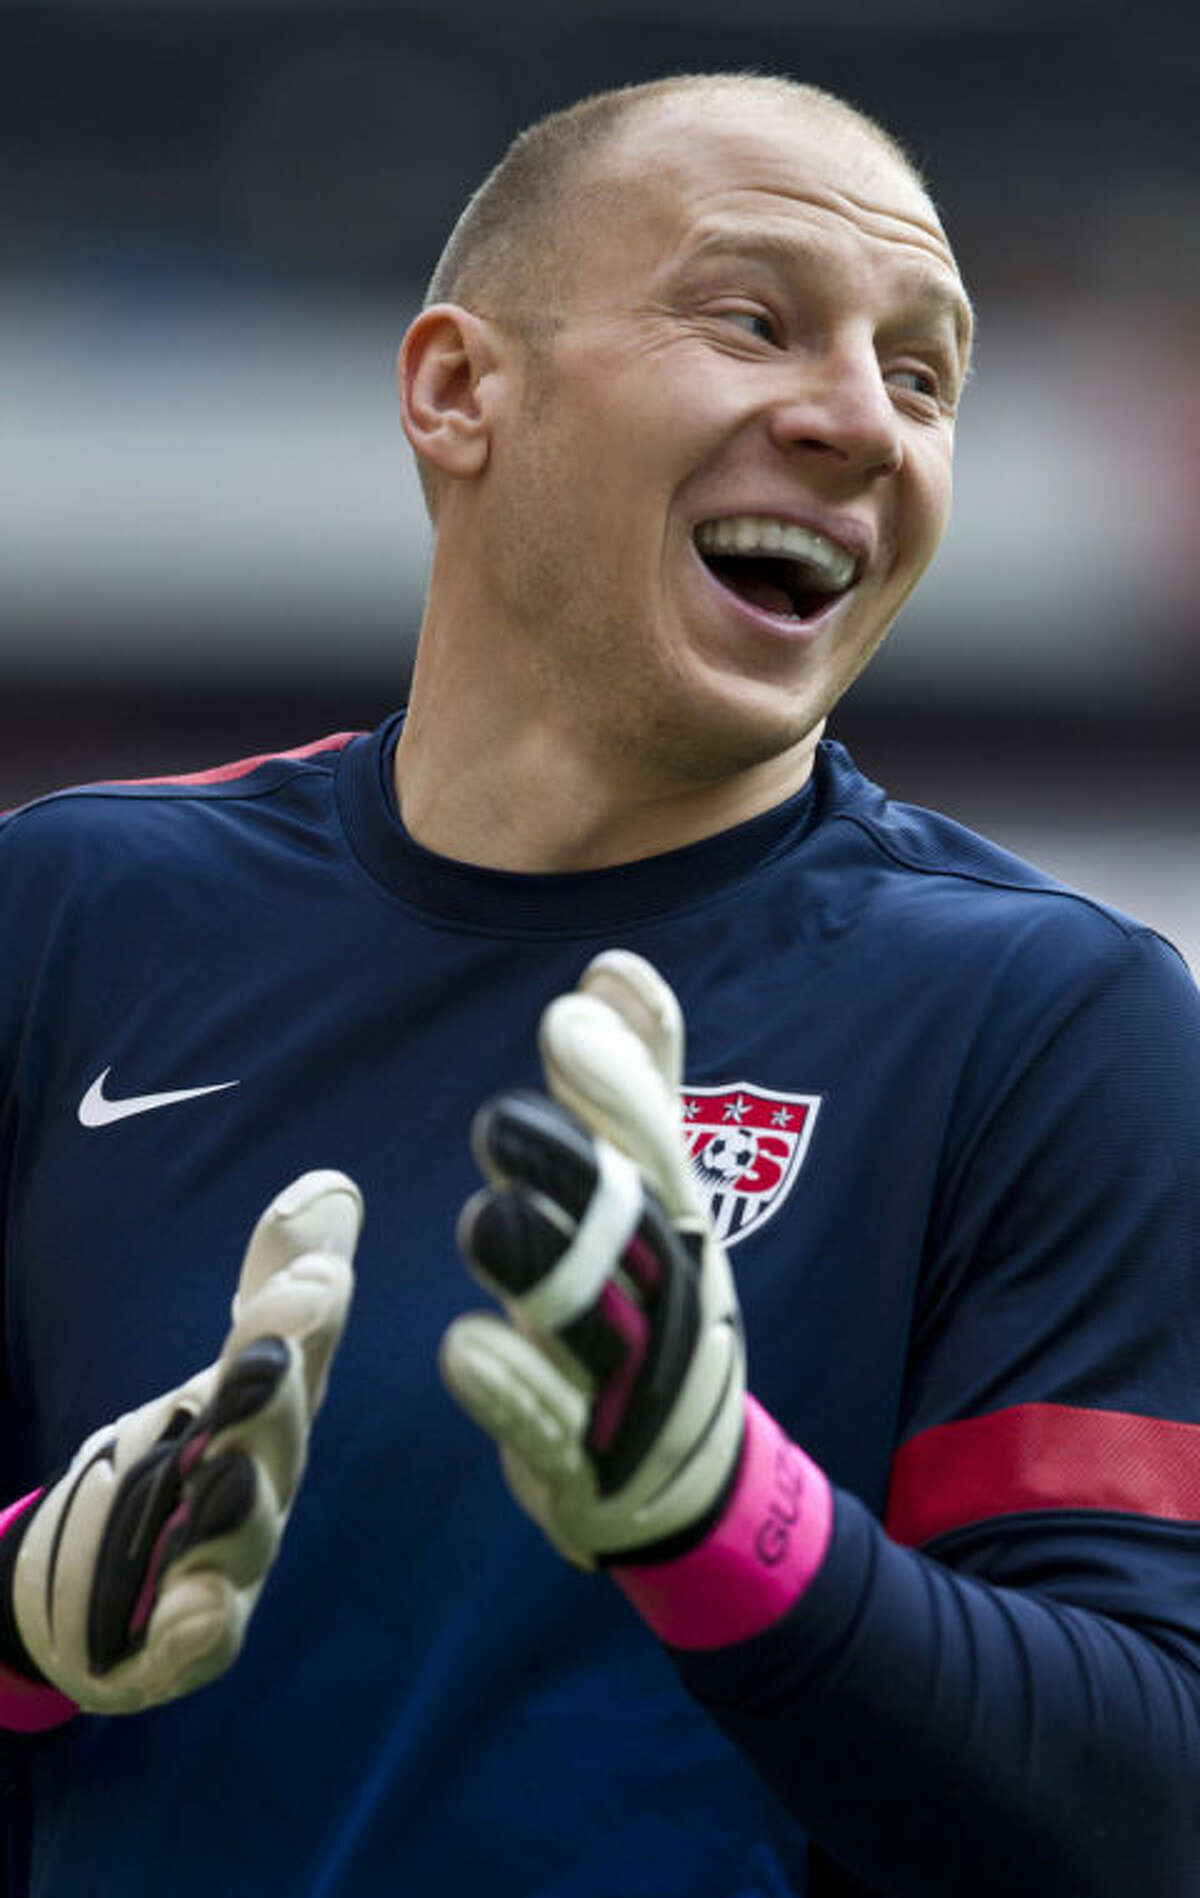 FILe - In this March 25, 2013 file photo, U.S. goalkeeper Brad Guzan smiles during a training session in Mexico City. Guzan, a standout in the English Premier League, would start for a number of World Cup teams. He'll be on the bench for the Americans, waiting for his turn behind veteran keeper Tim Howard. (AP Photo/Christian Palma, File)